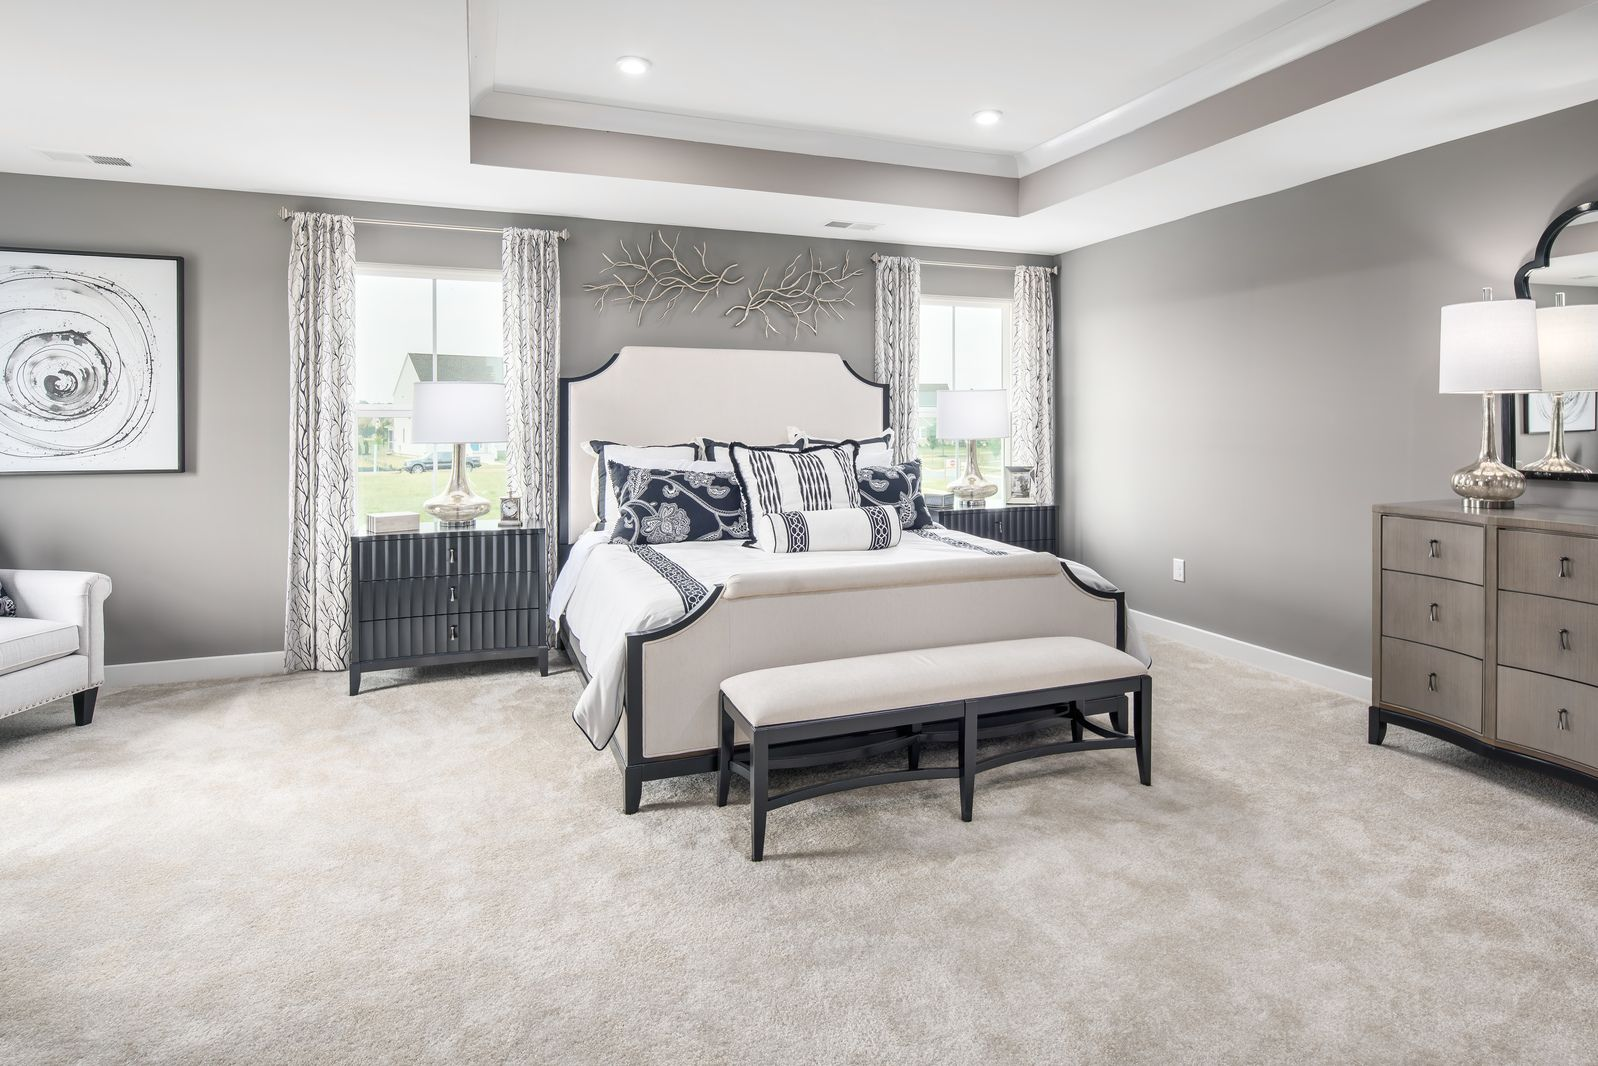 Bedroom featured in the Versailles By Ryan Homes in Washington, MD